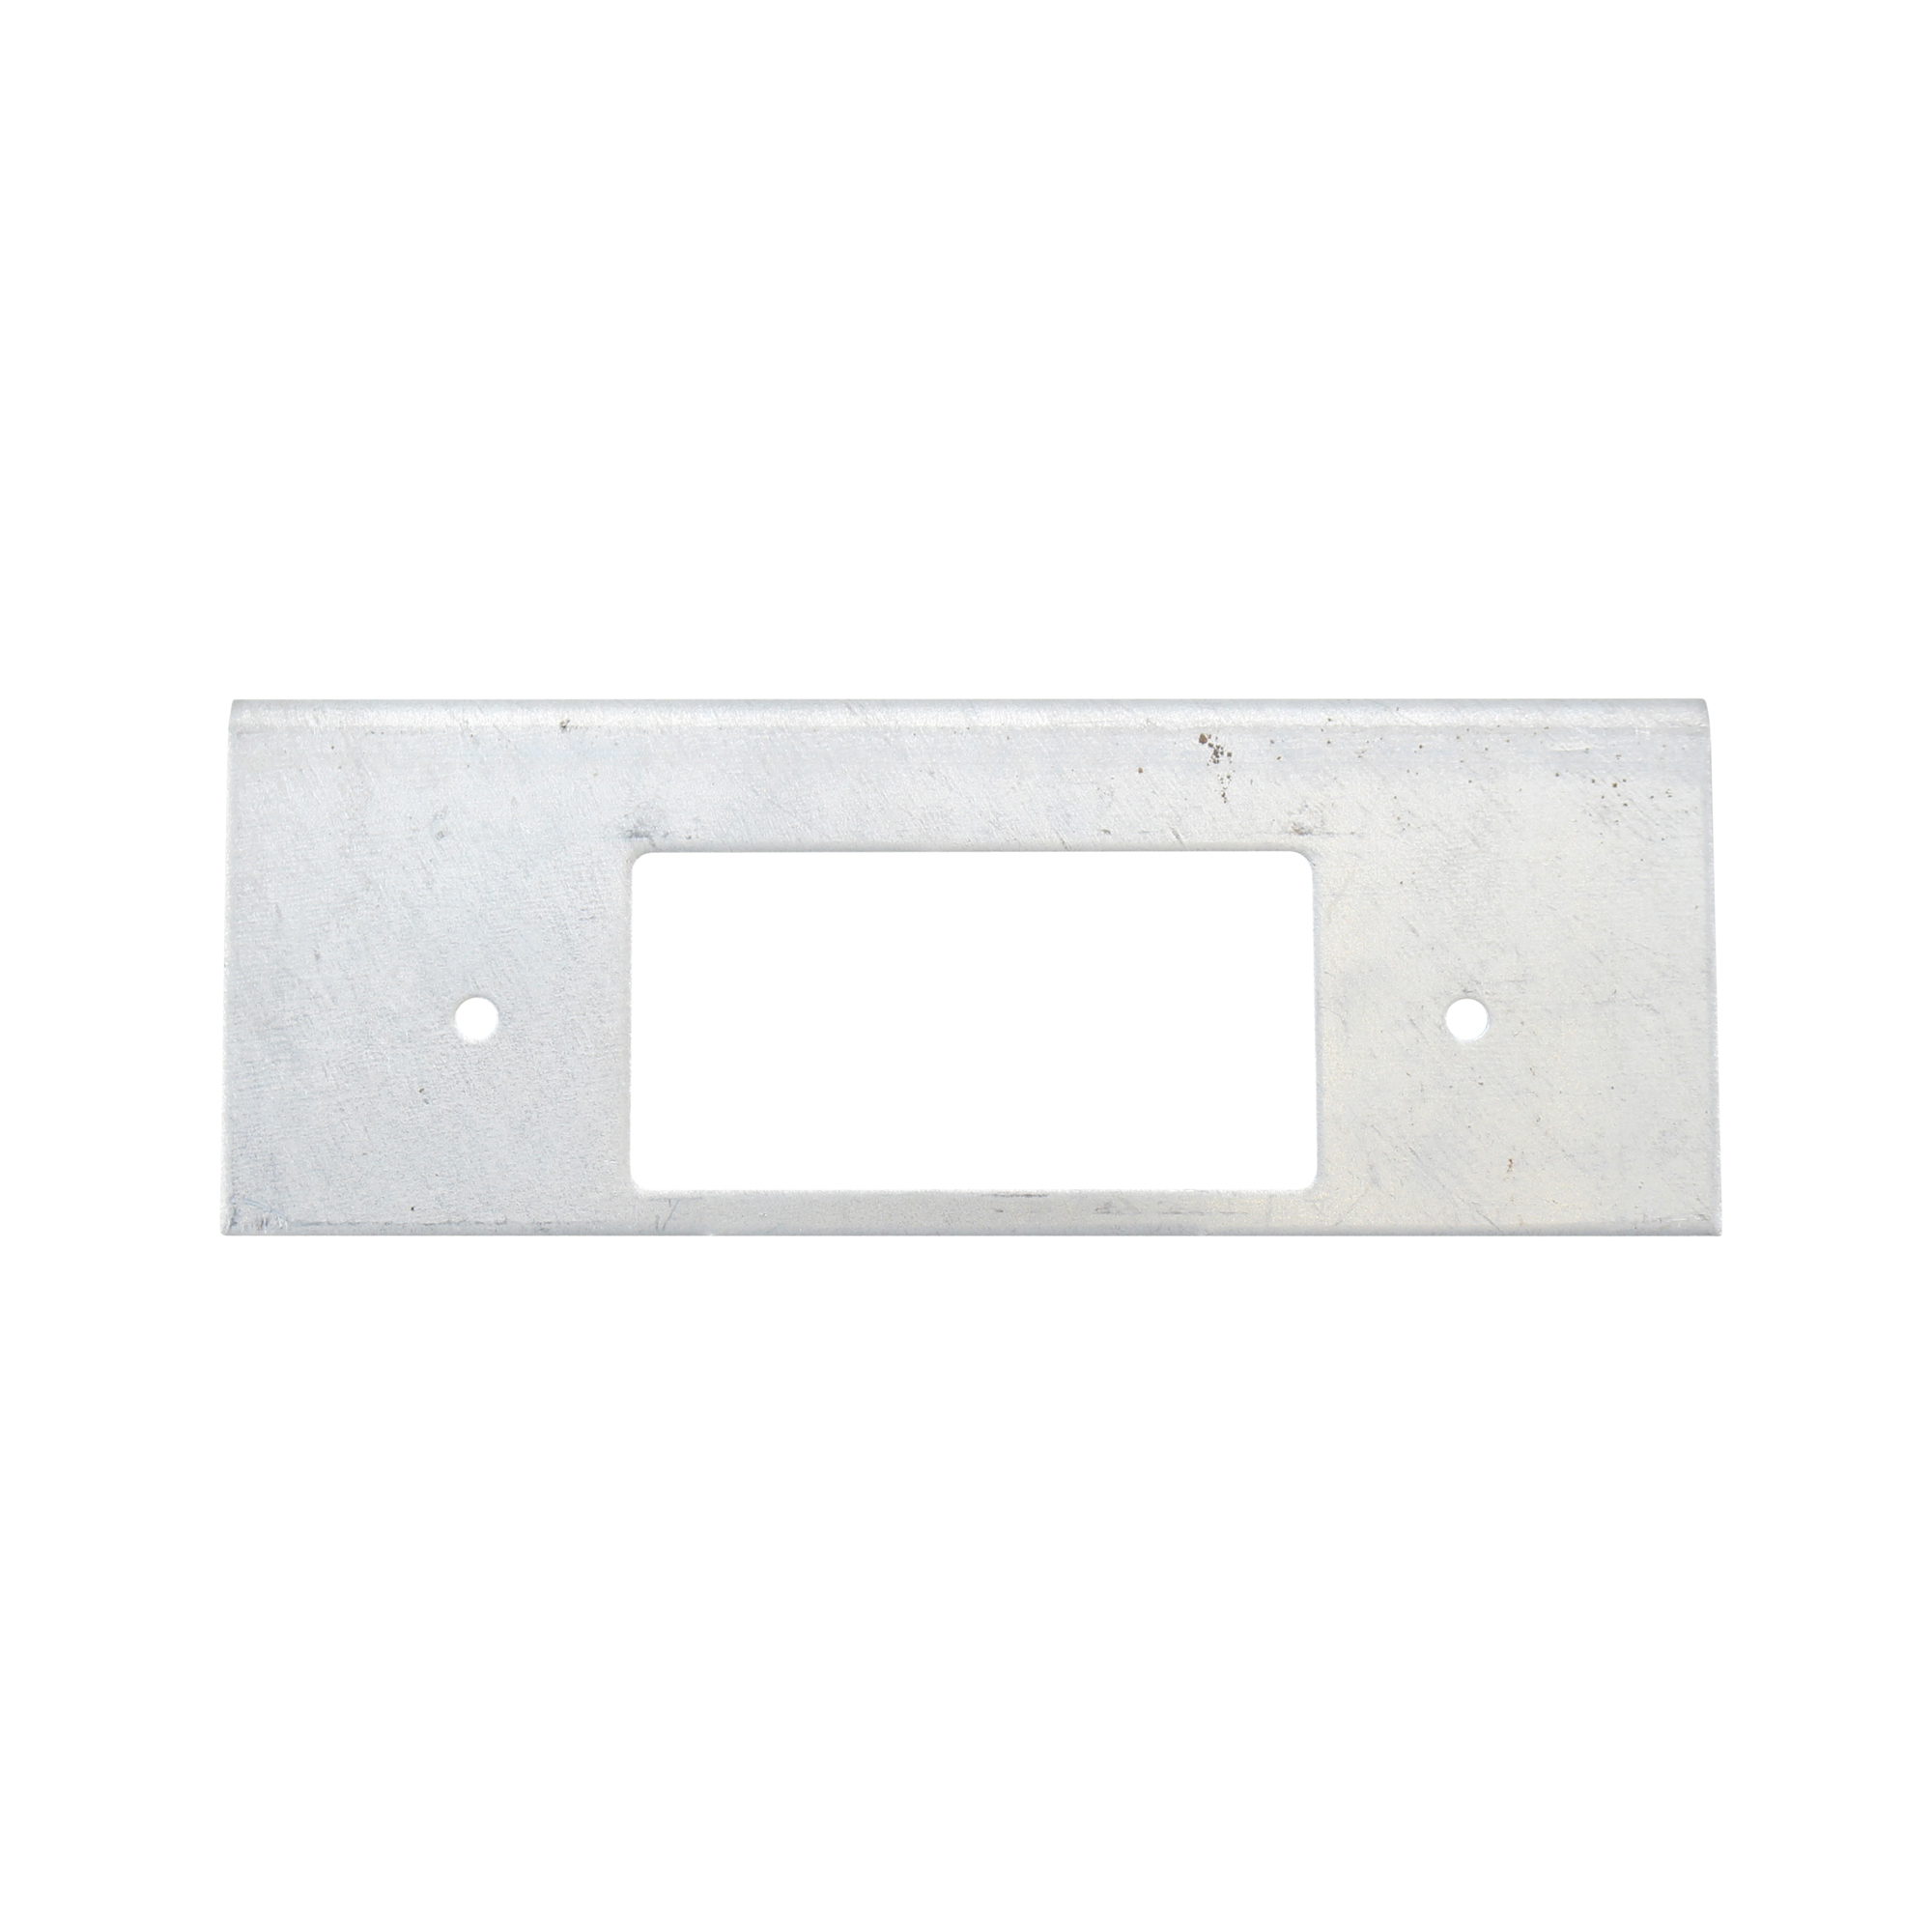 Thomas & Betts 665-GP Single Gang GFCI Device Plate for use with 4 Gang Floor Boxes